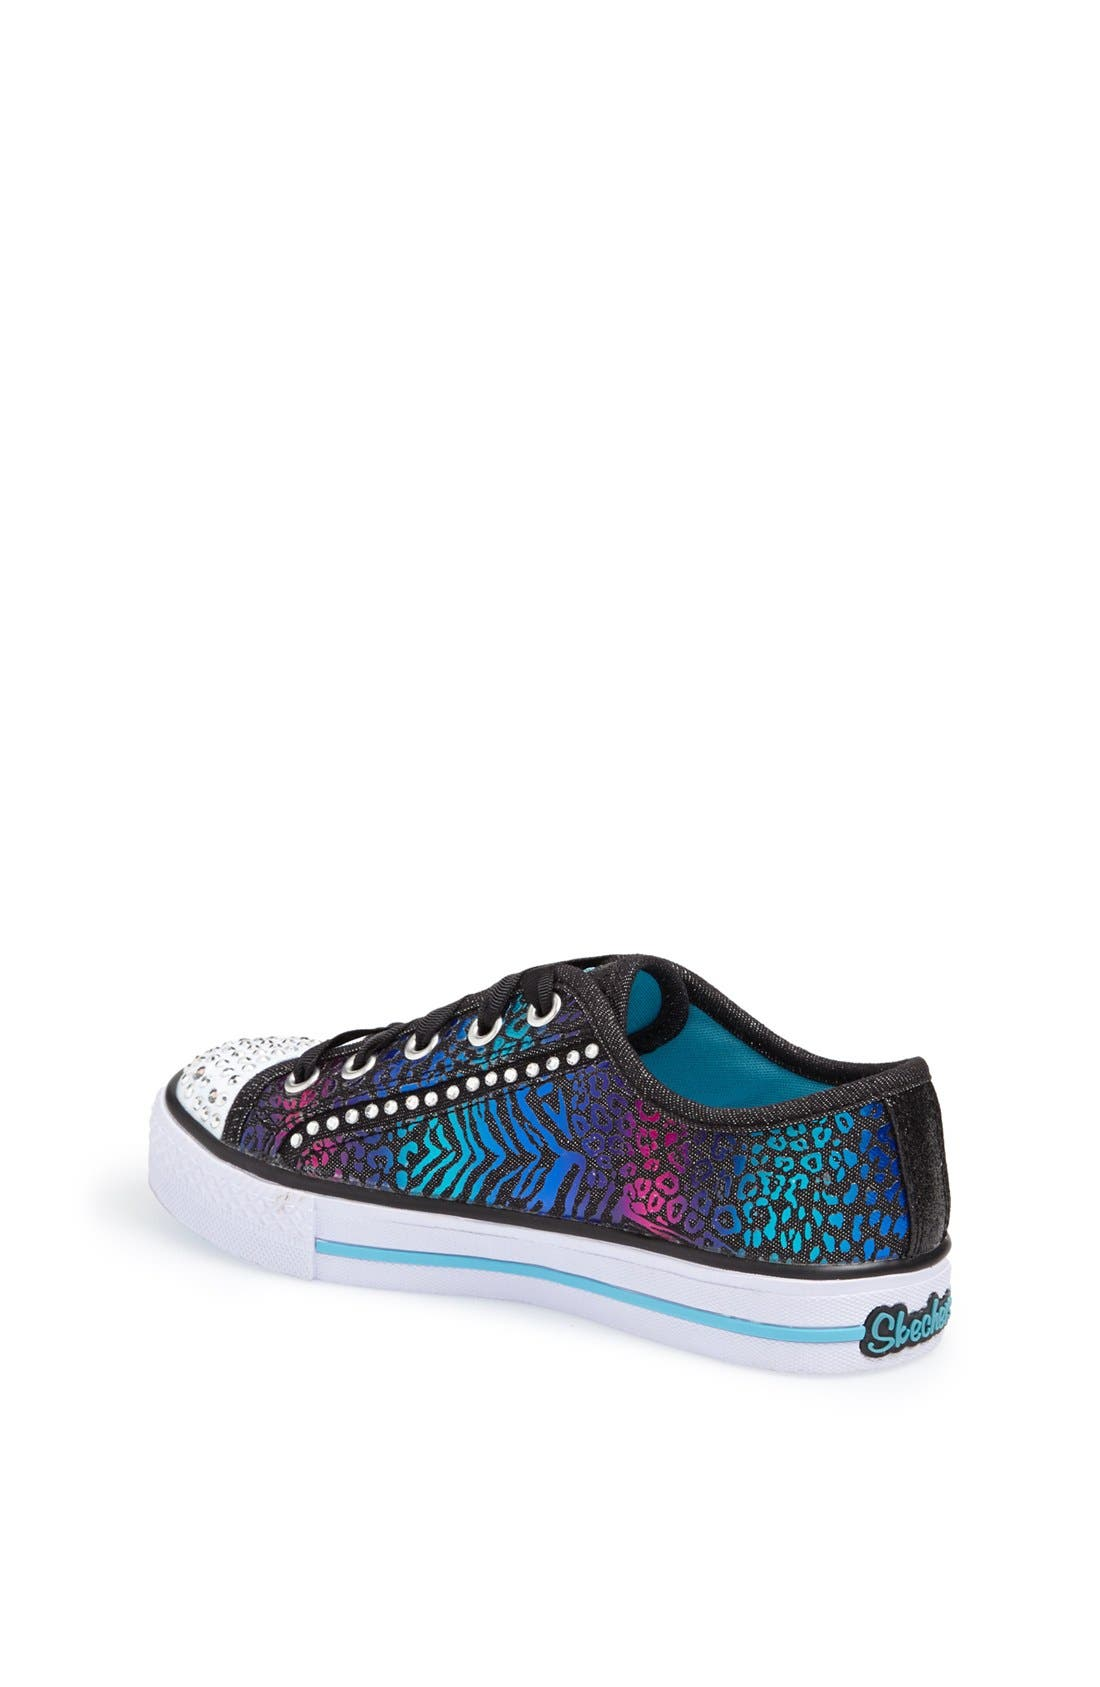 Alternate Image 2  - SKECHERS 'Shuffles - Gimme Glam' Light Up Sneaker (Toddler, Little Kid & Big Kid)